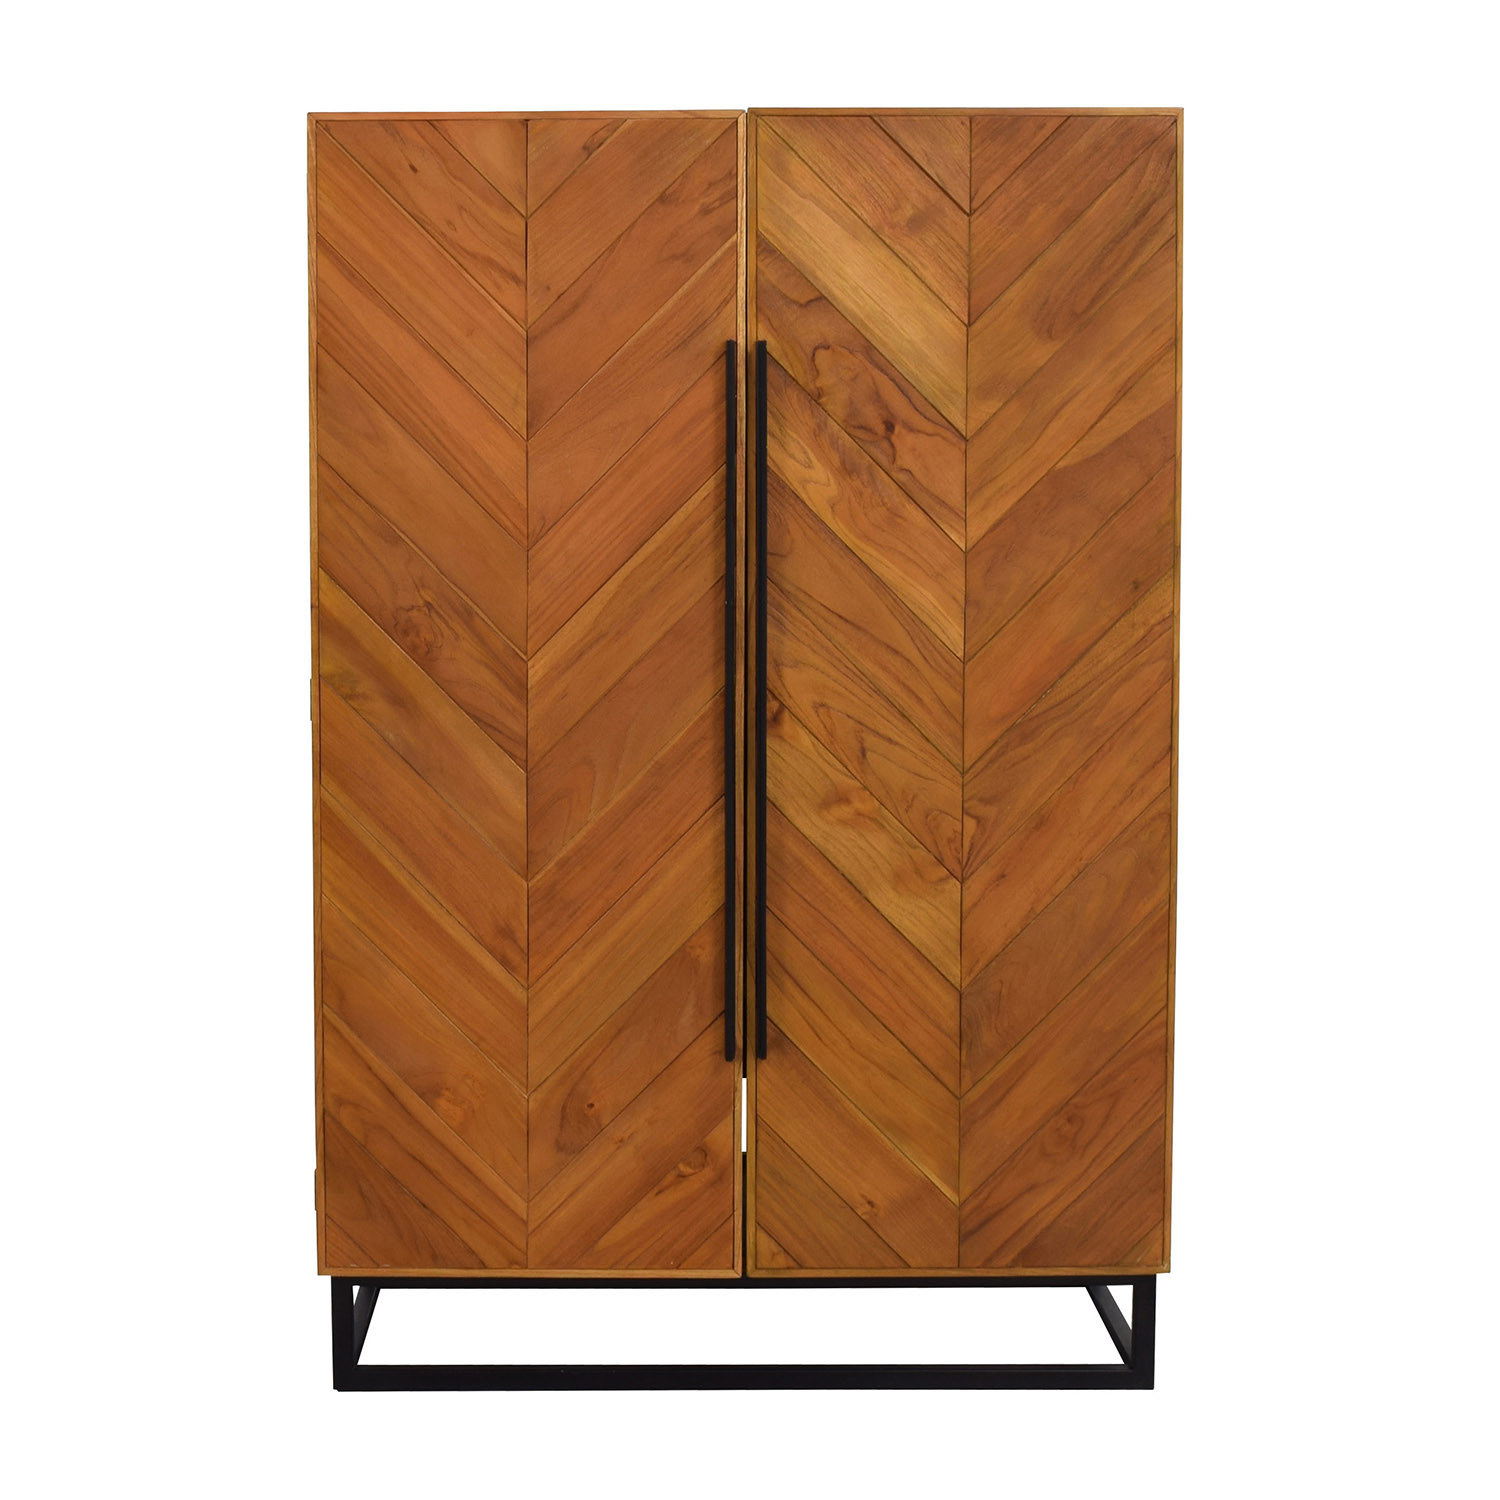 Crate & Barrel Estilo Cabinet sale